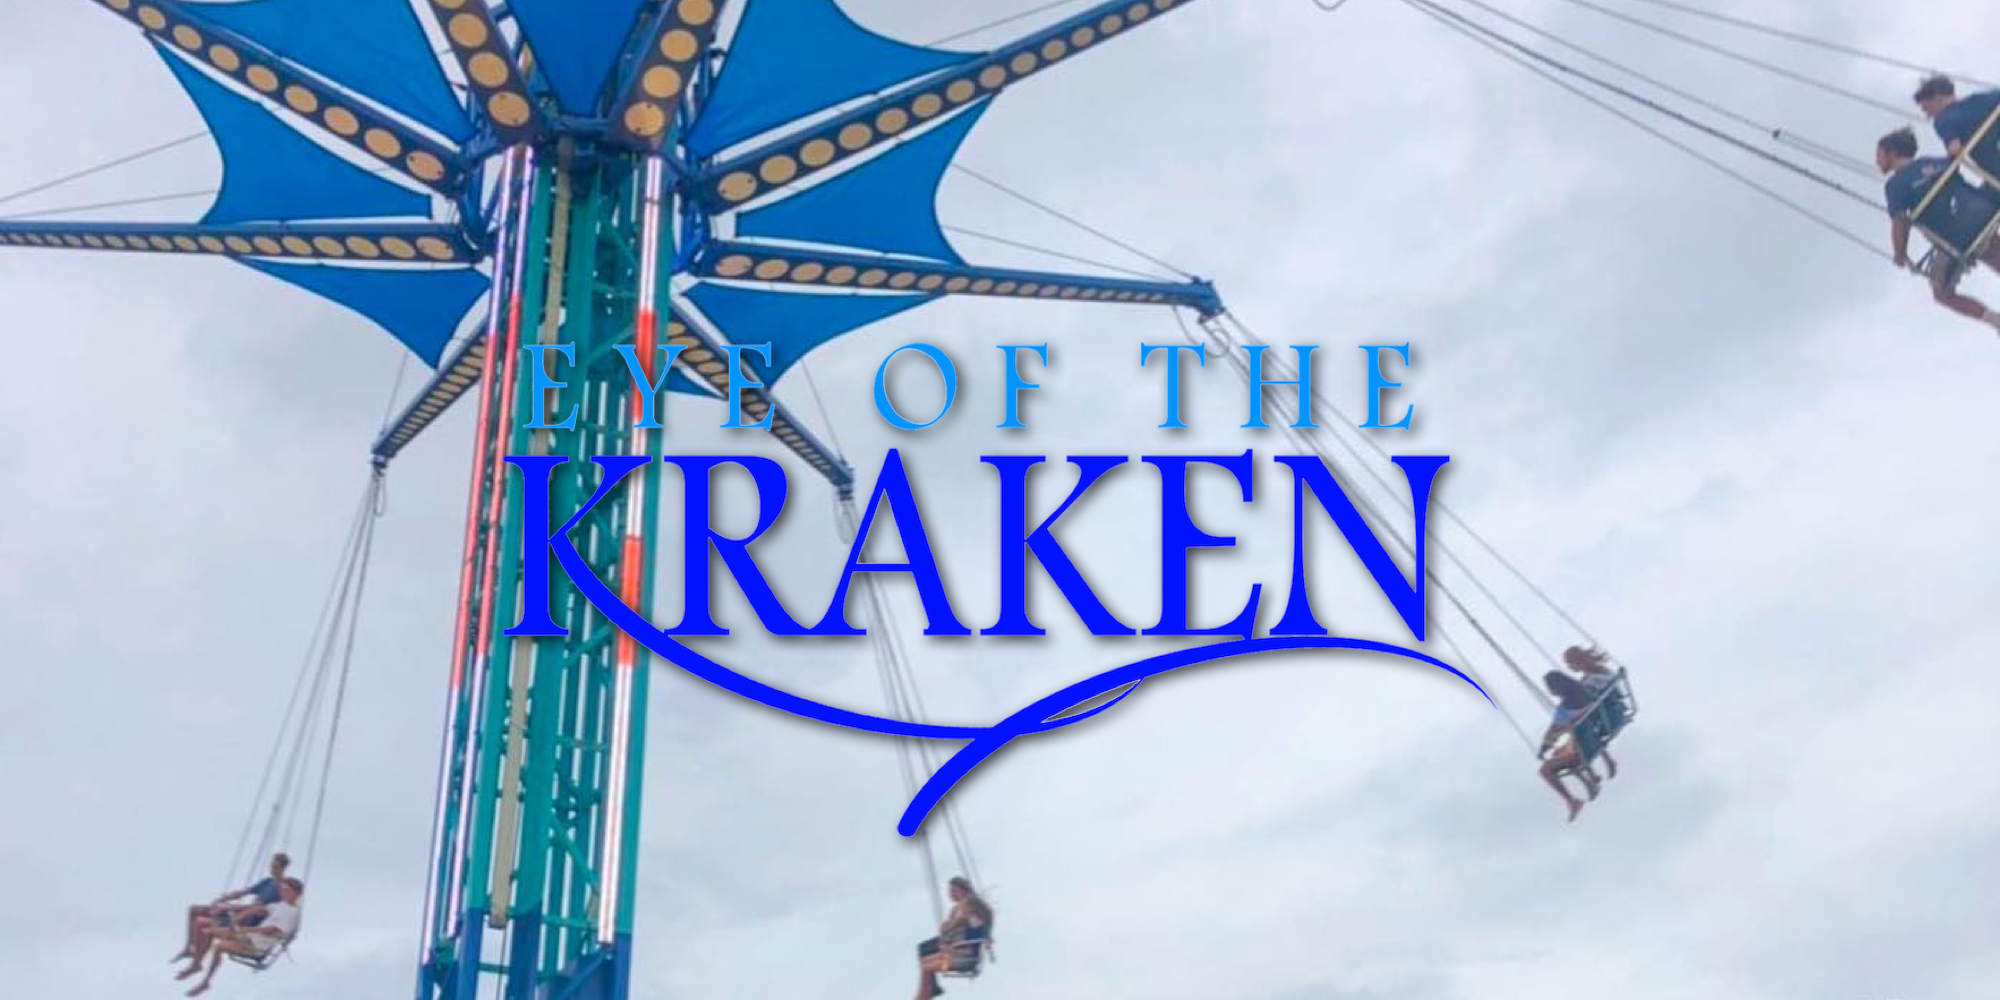 Logo for the Eye of the Kraken tower swings attraction at Swampy Jack's Wongo Adventure in Panama City Beach, Florida